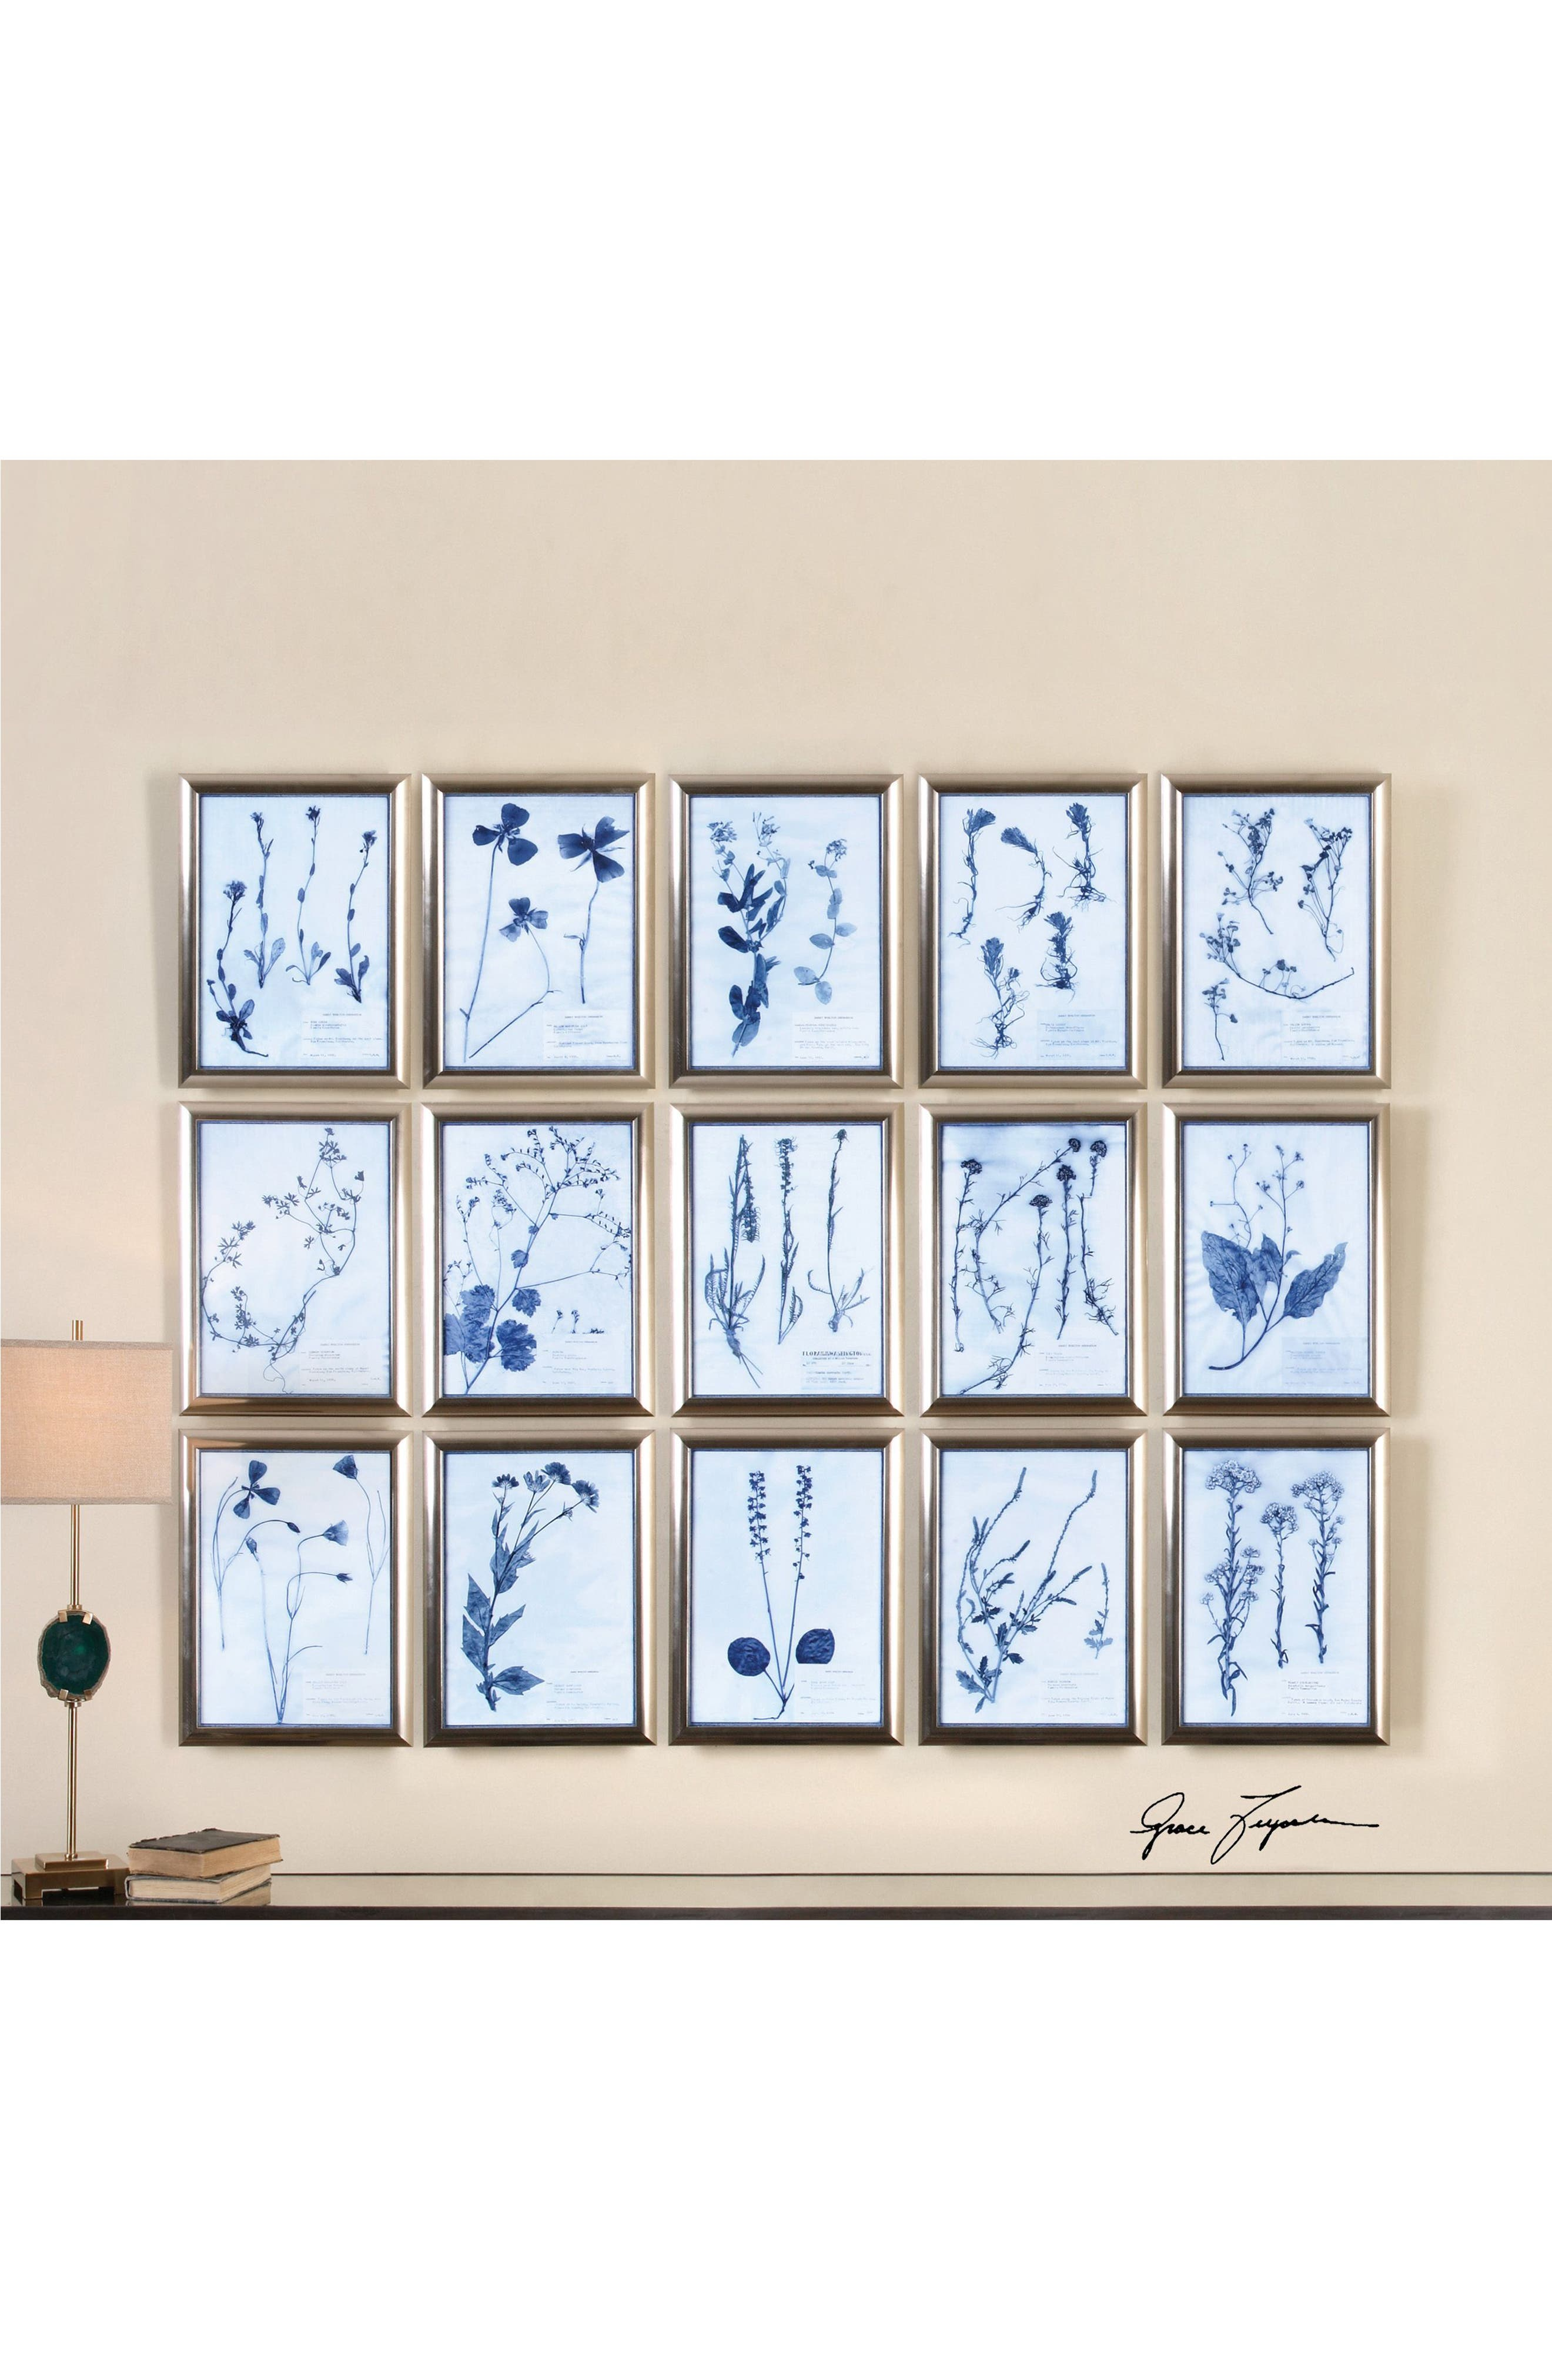 Pressed Flower 15-Piece Wall Art Set,                             Alternate thumbnail 2, color,                             020